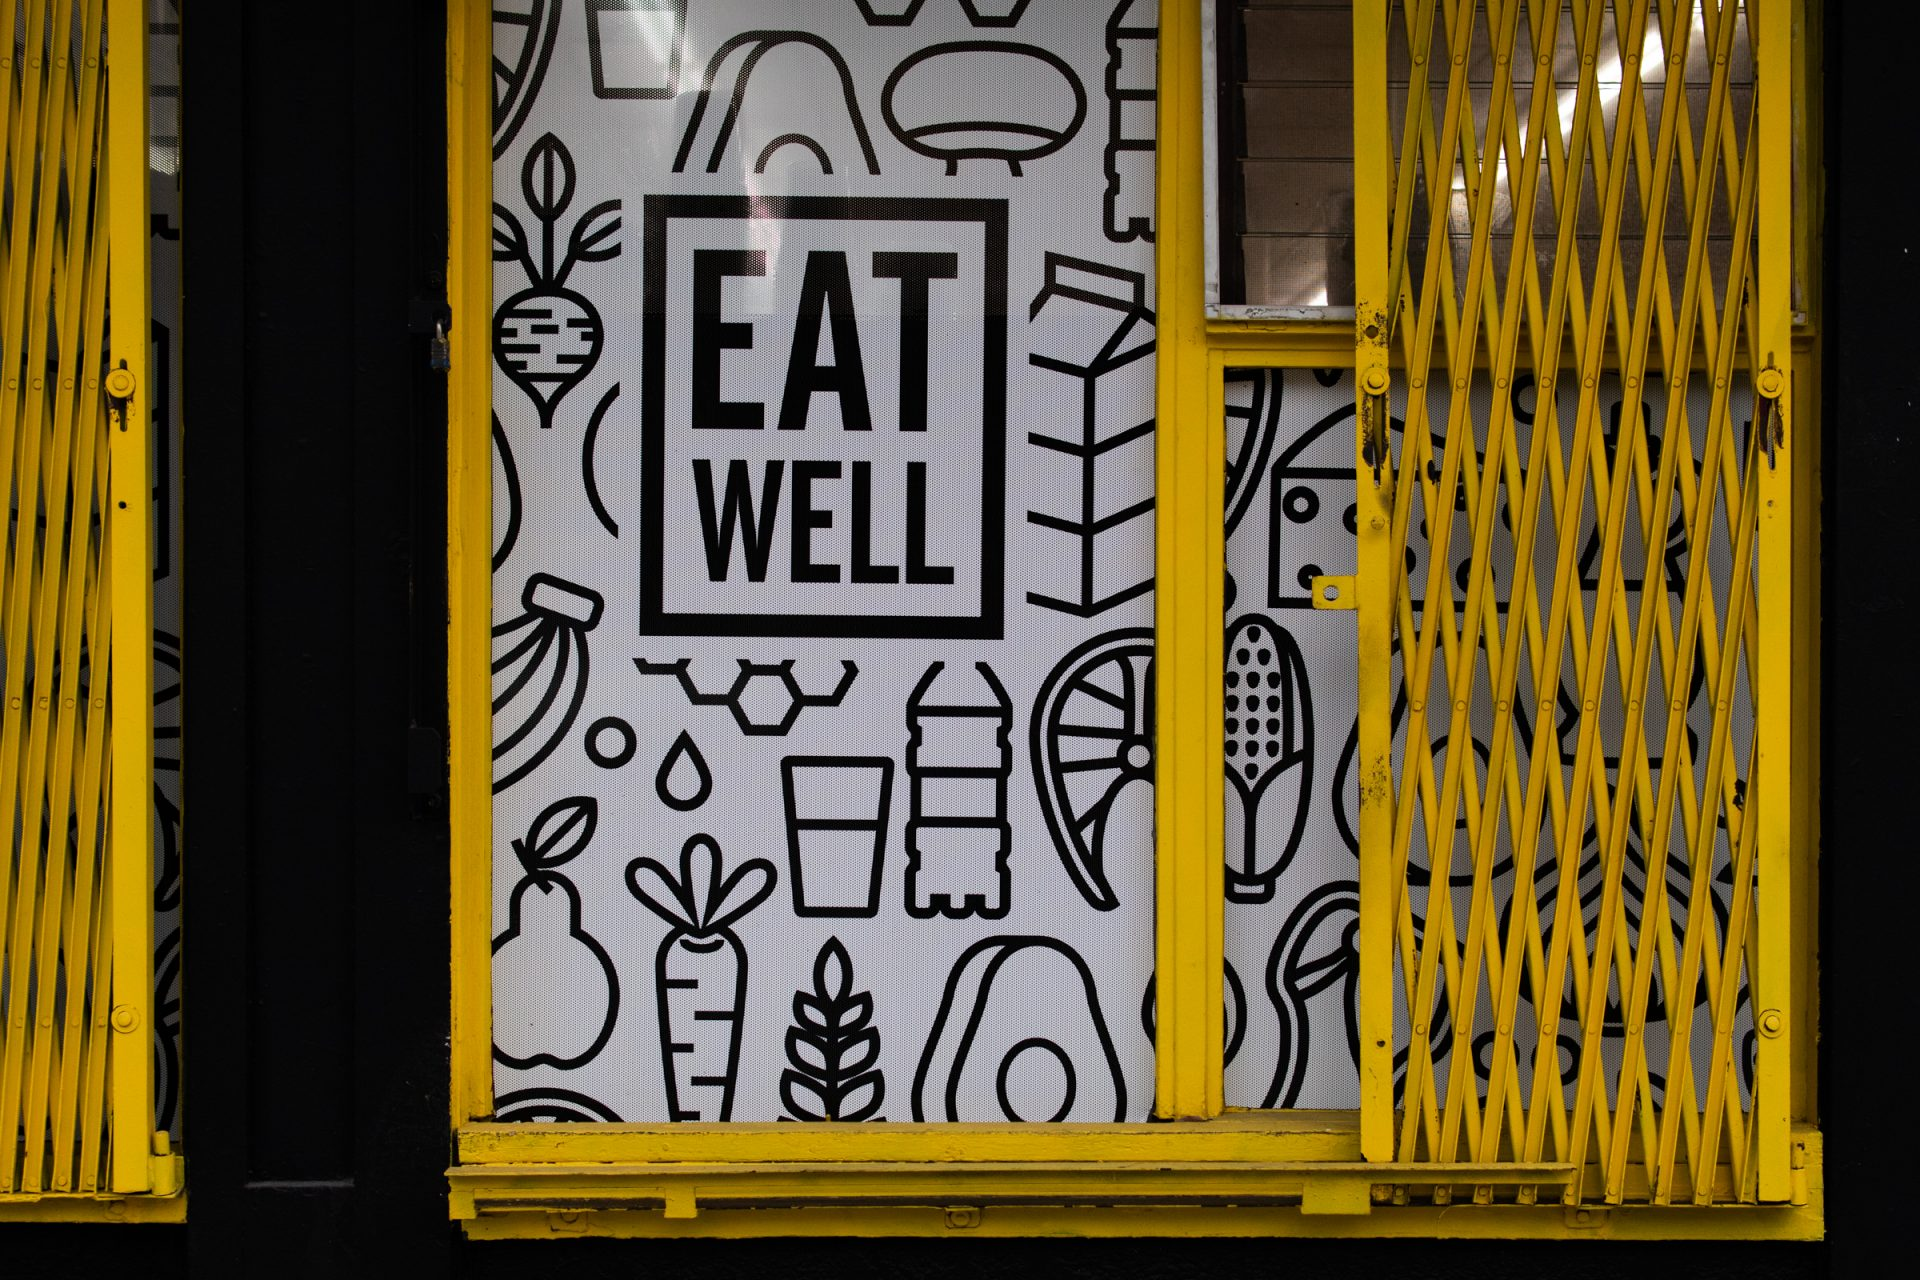 Eat Well Illustration On Storefront With Folding Doors